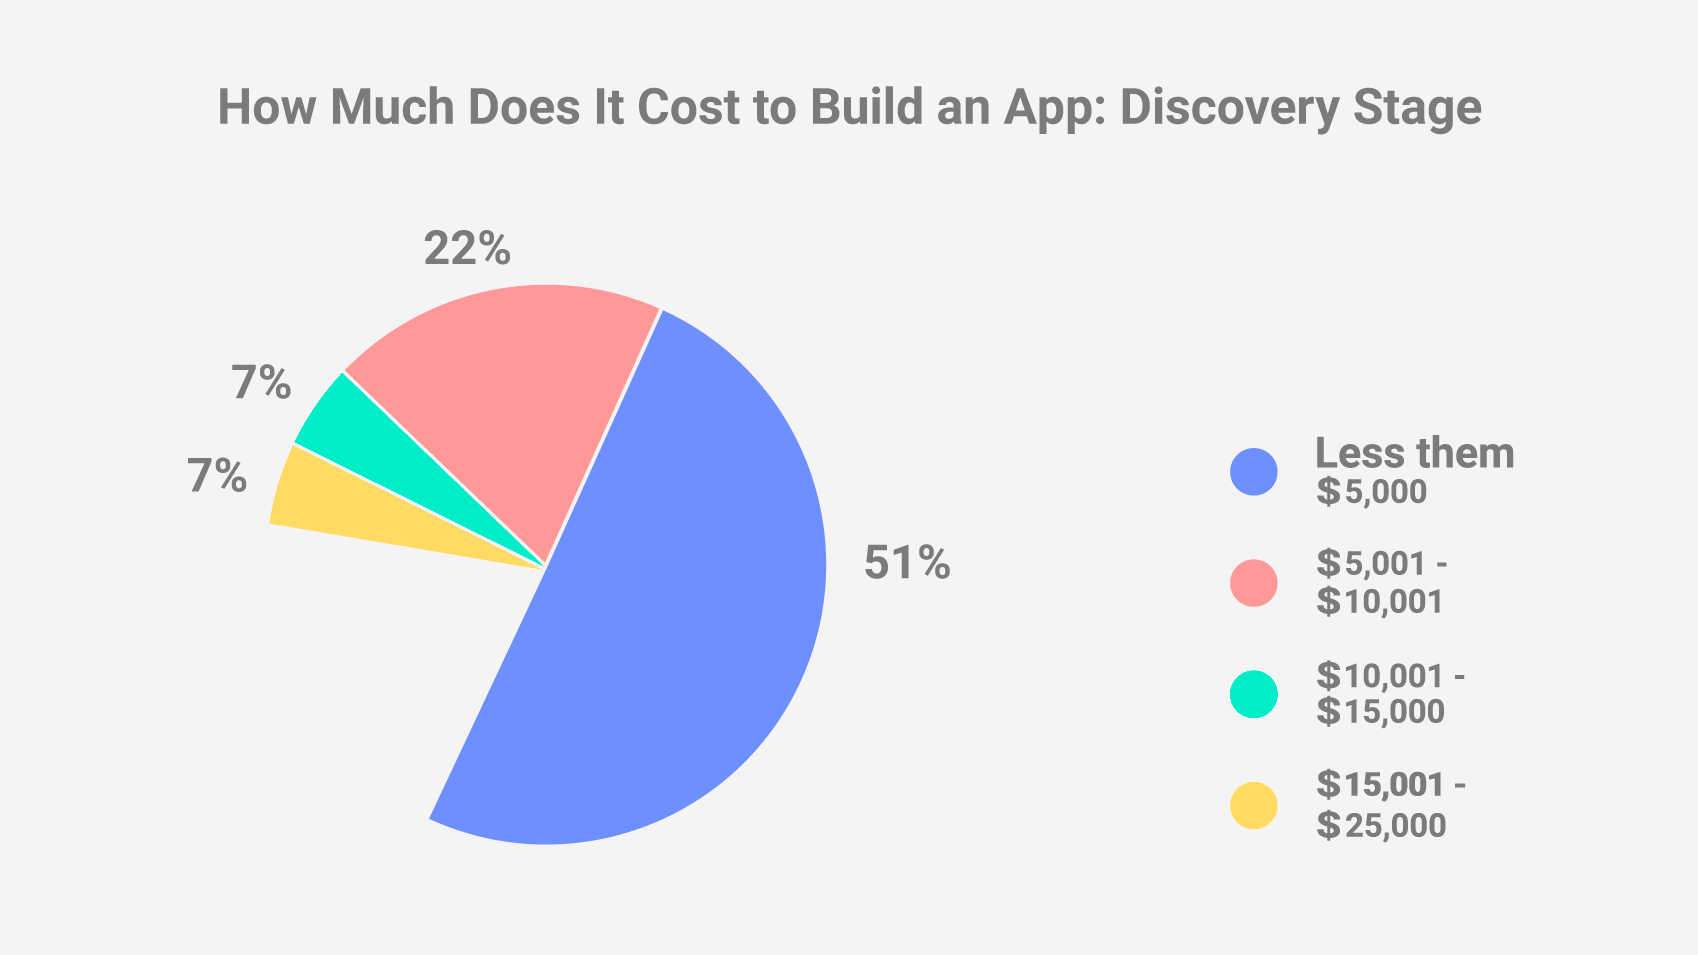 How Much Does It Cost to Build an App: Discovery Stage